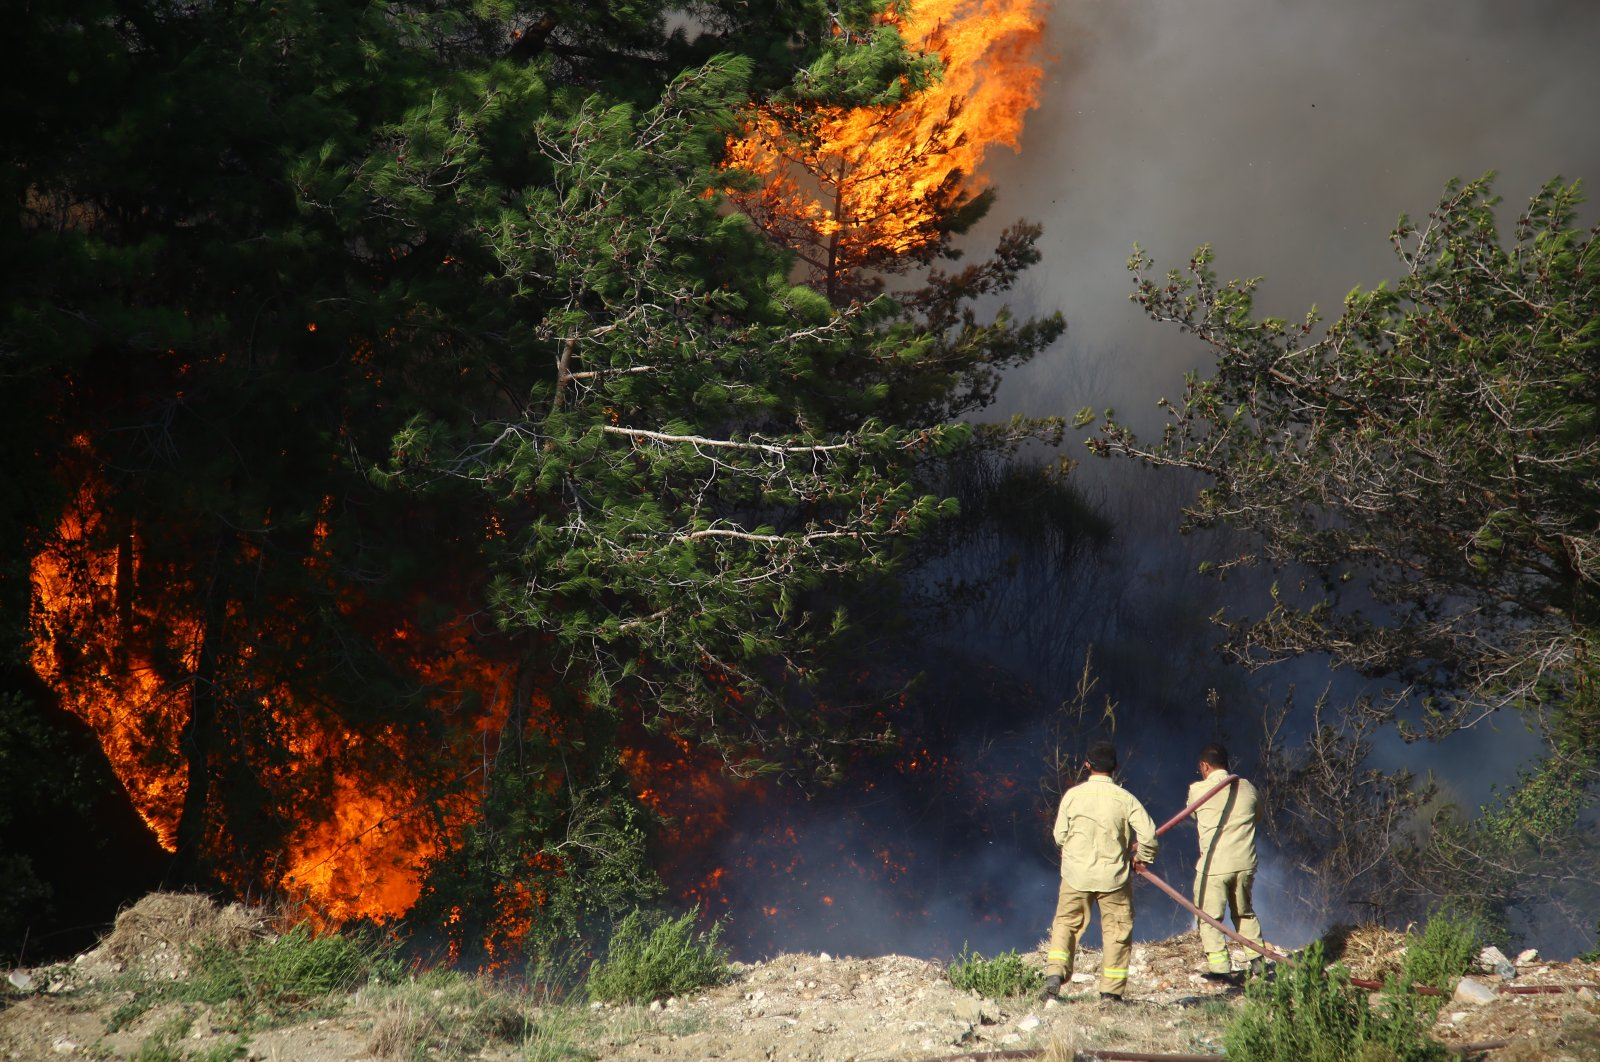 Firefighters put out flames in Hatay, southern Turkey, Oct. 10, 2020. (AA Photo)